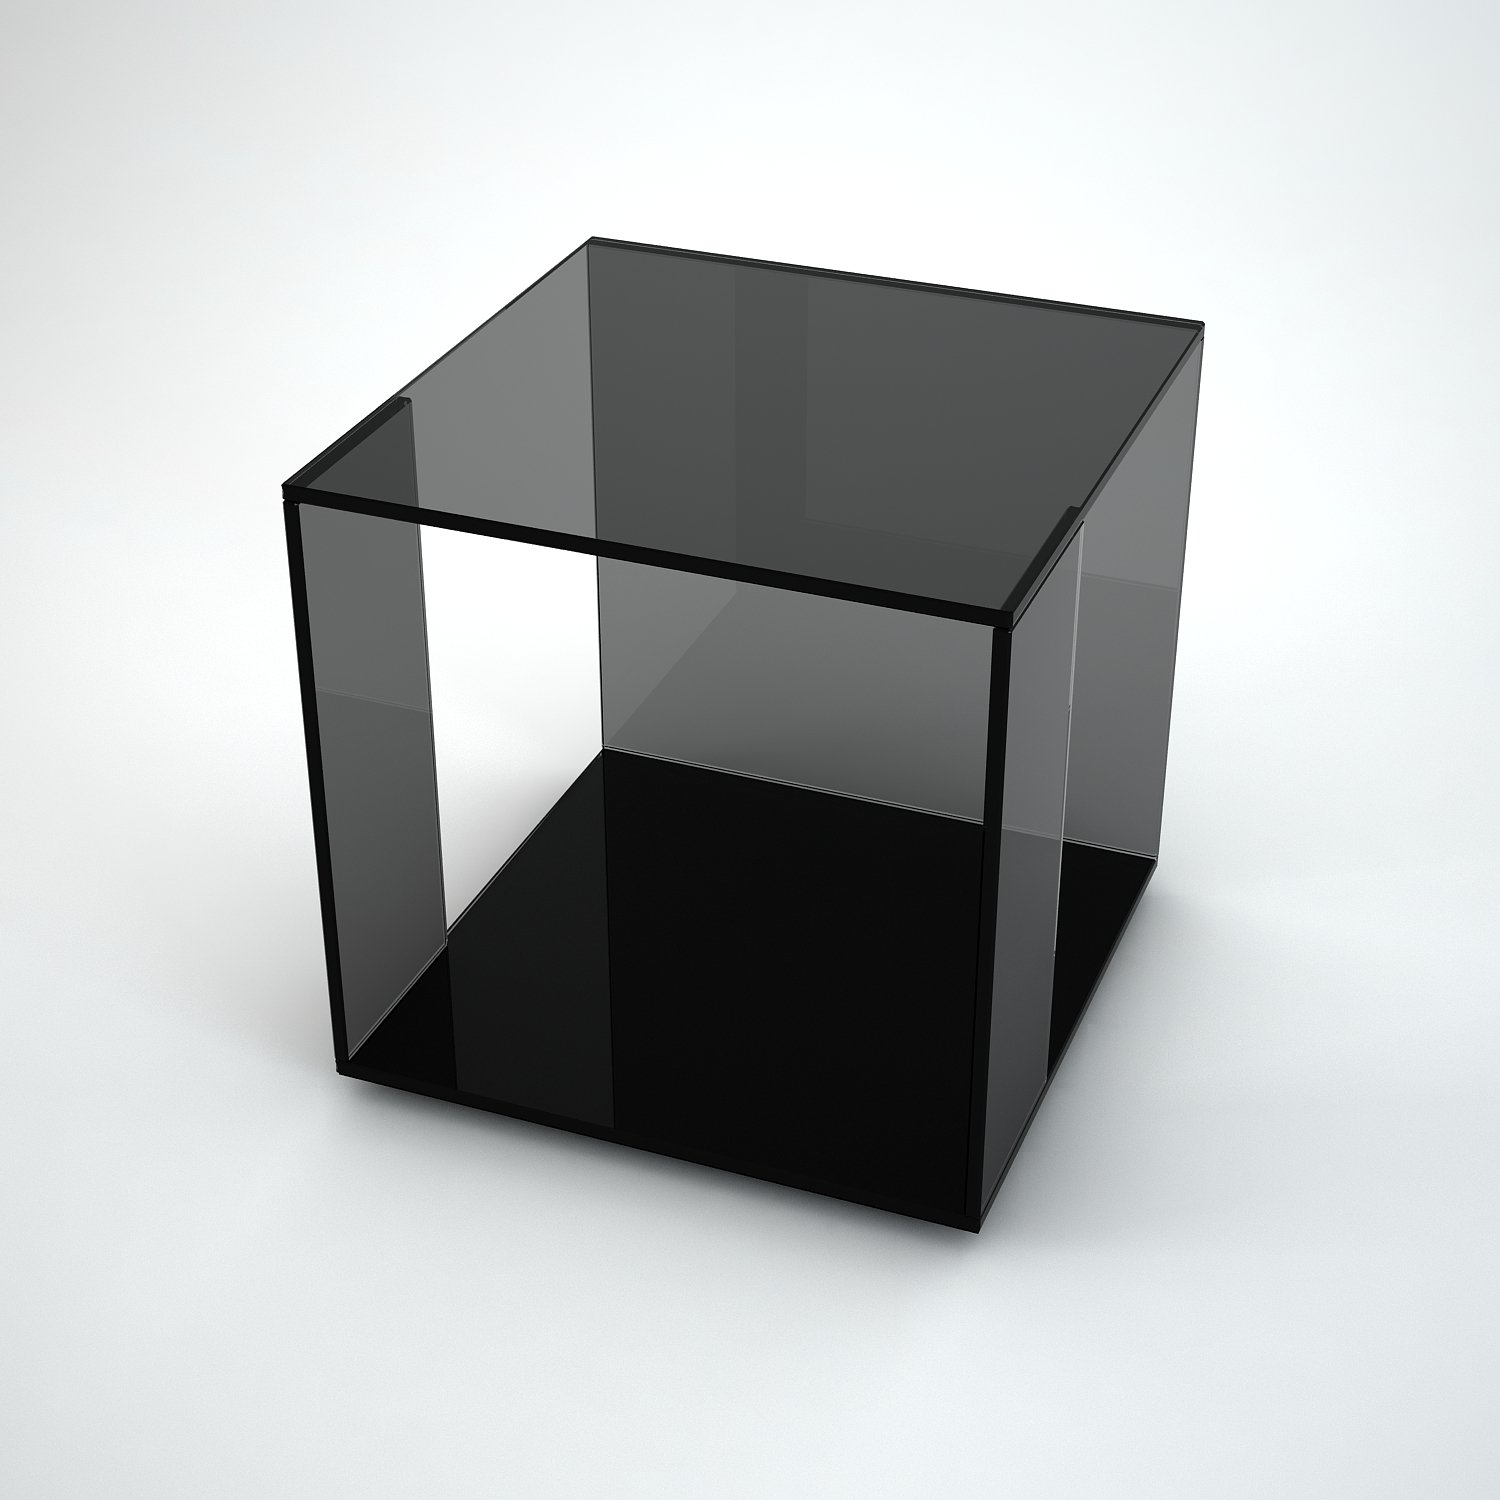 Tifino grey tint glass side table by klarity klarity for Glass furniture